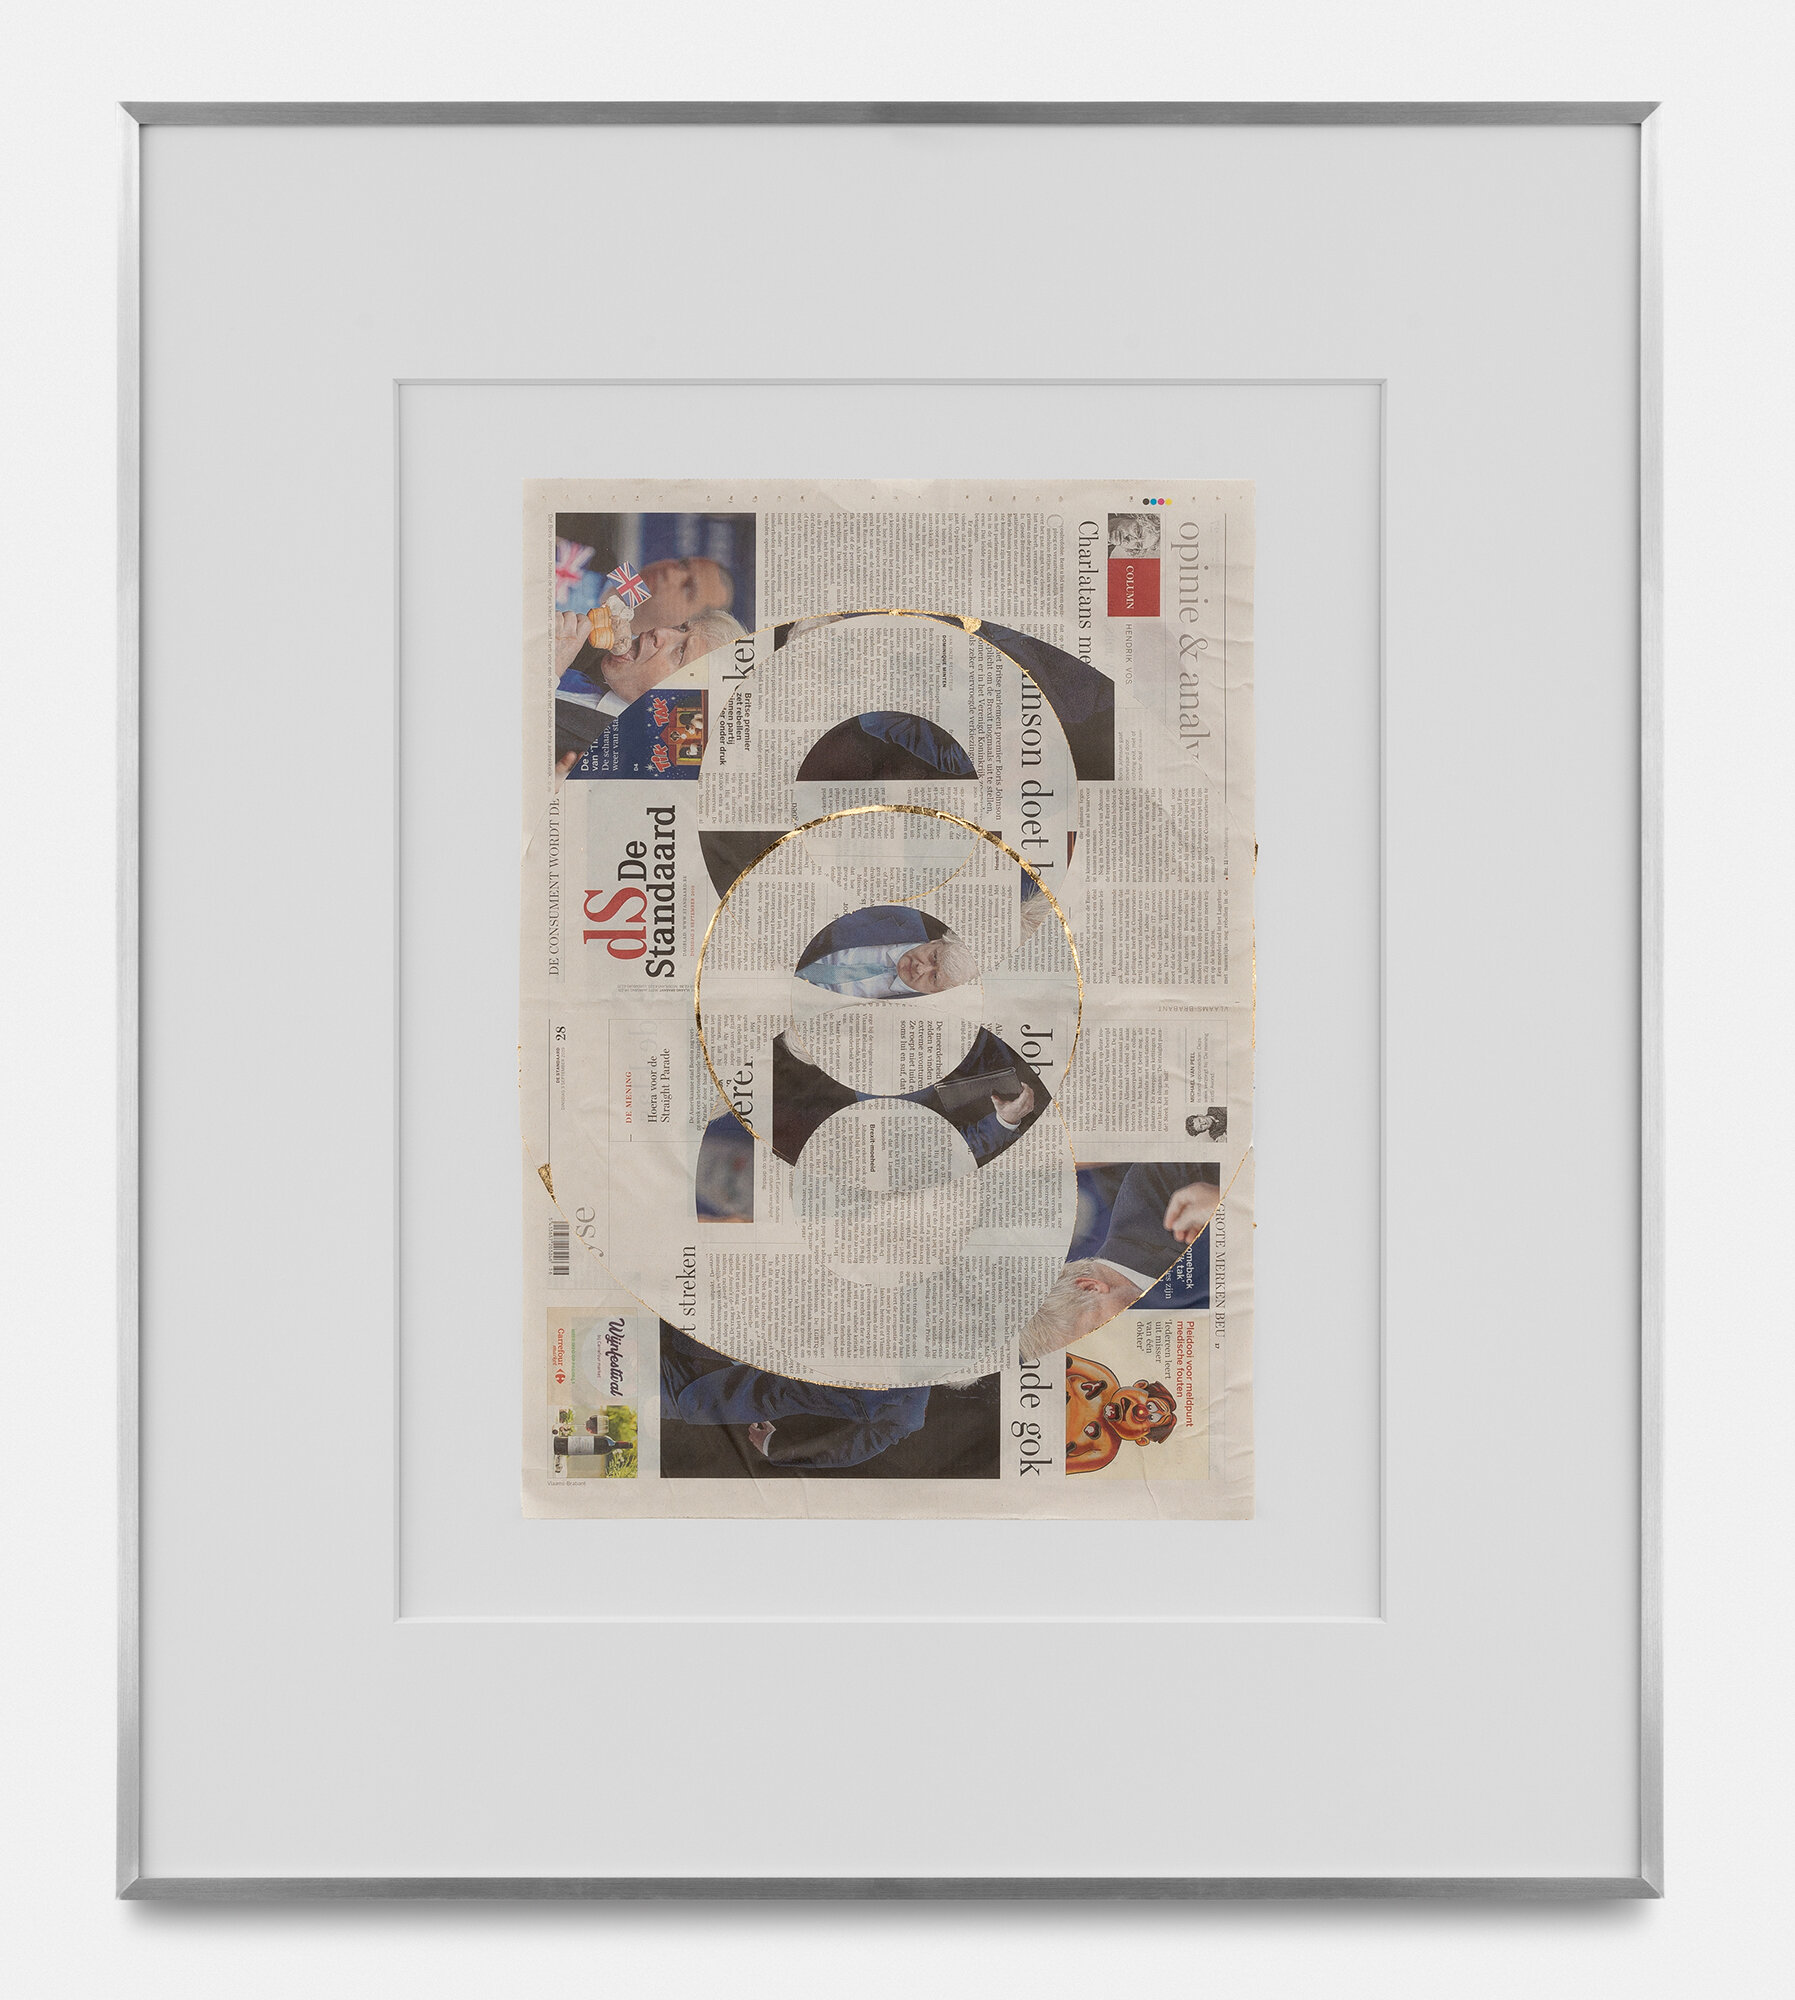 Blind Collage (Three 180° Rotations, de Standaard, Tuesday, September 3, 2019)    2019   Newspaper, tape, and 22 karat gold leaf  33 5/8 x 39 1/8 inches   Blind Collages, 2017–